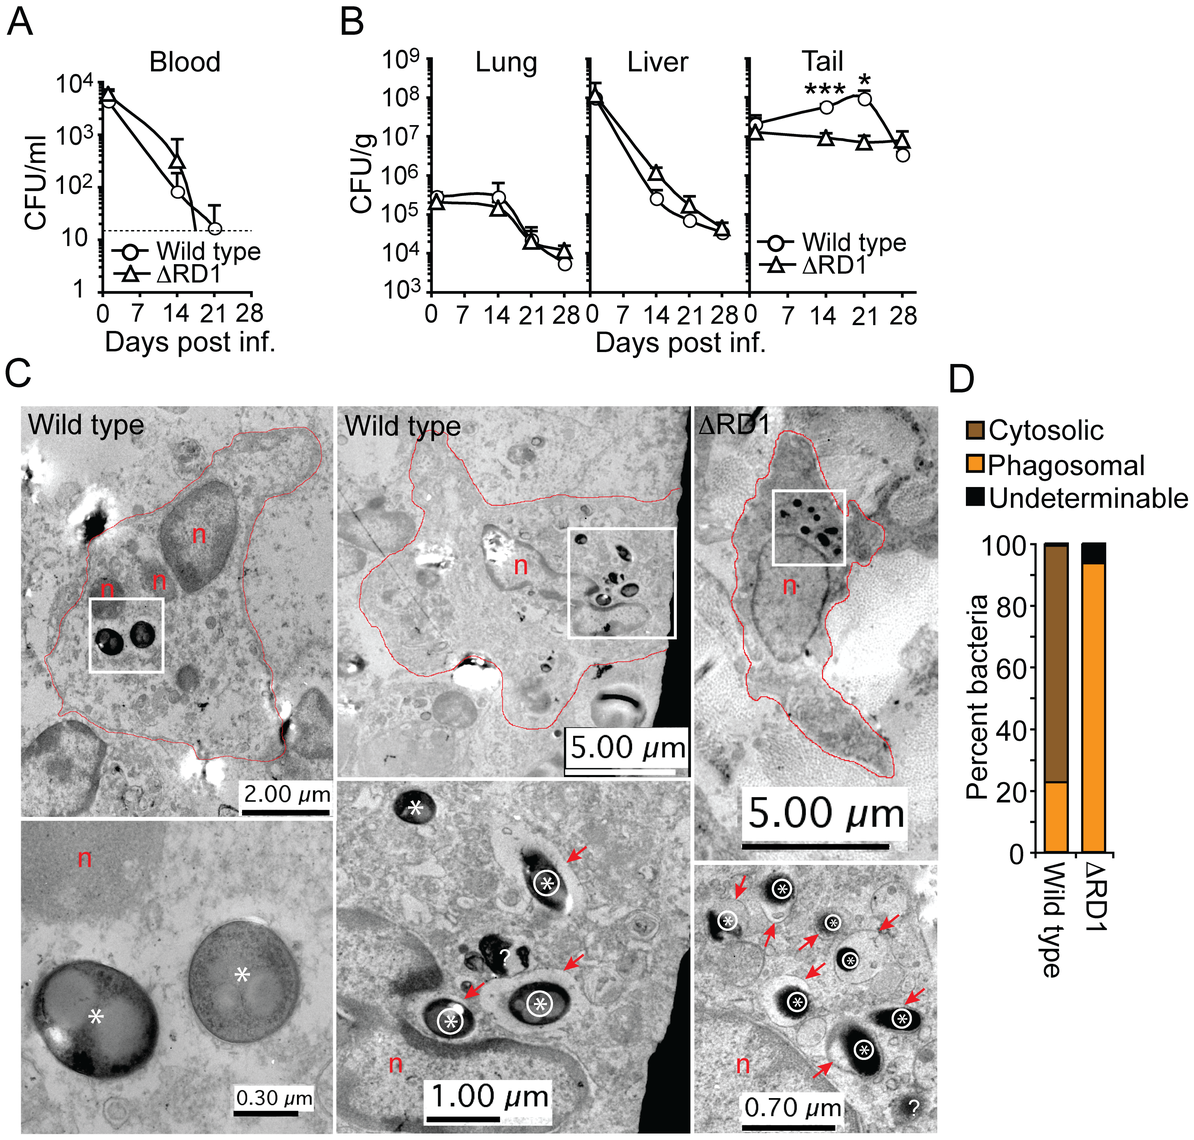 Esx-1 promotes bacterial growth and phagosome escape in tails of infected mice.